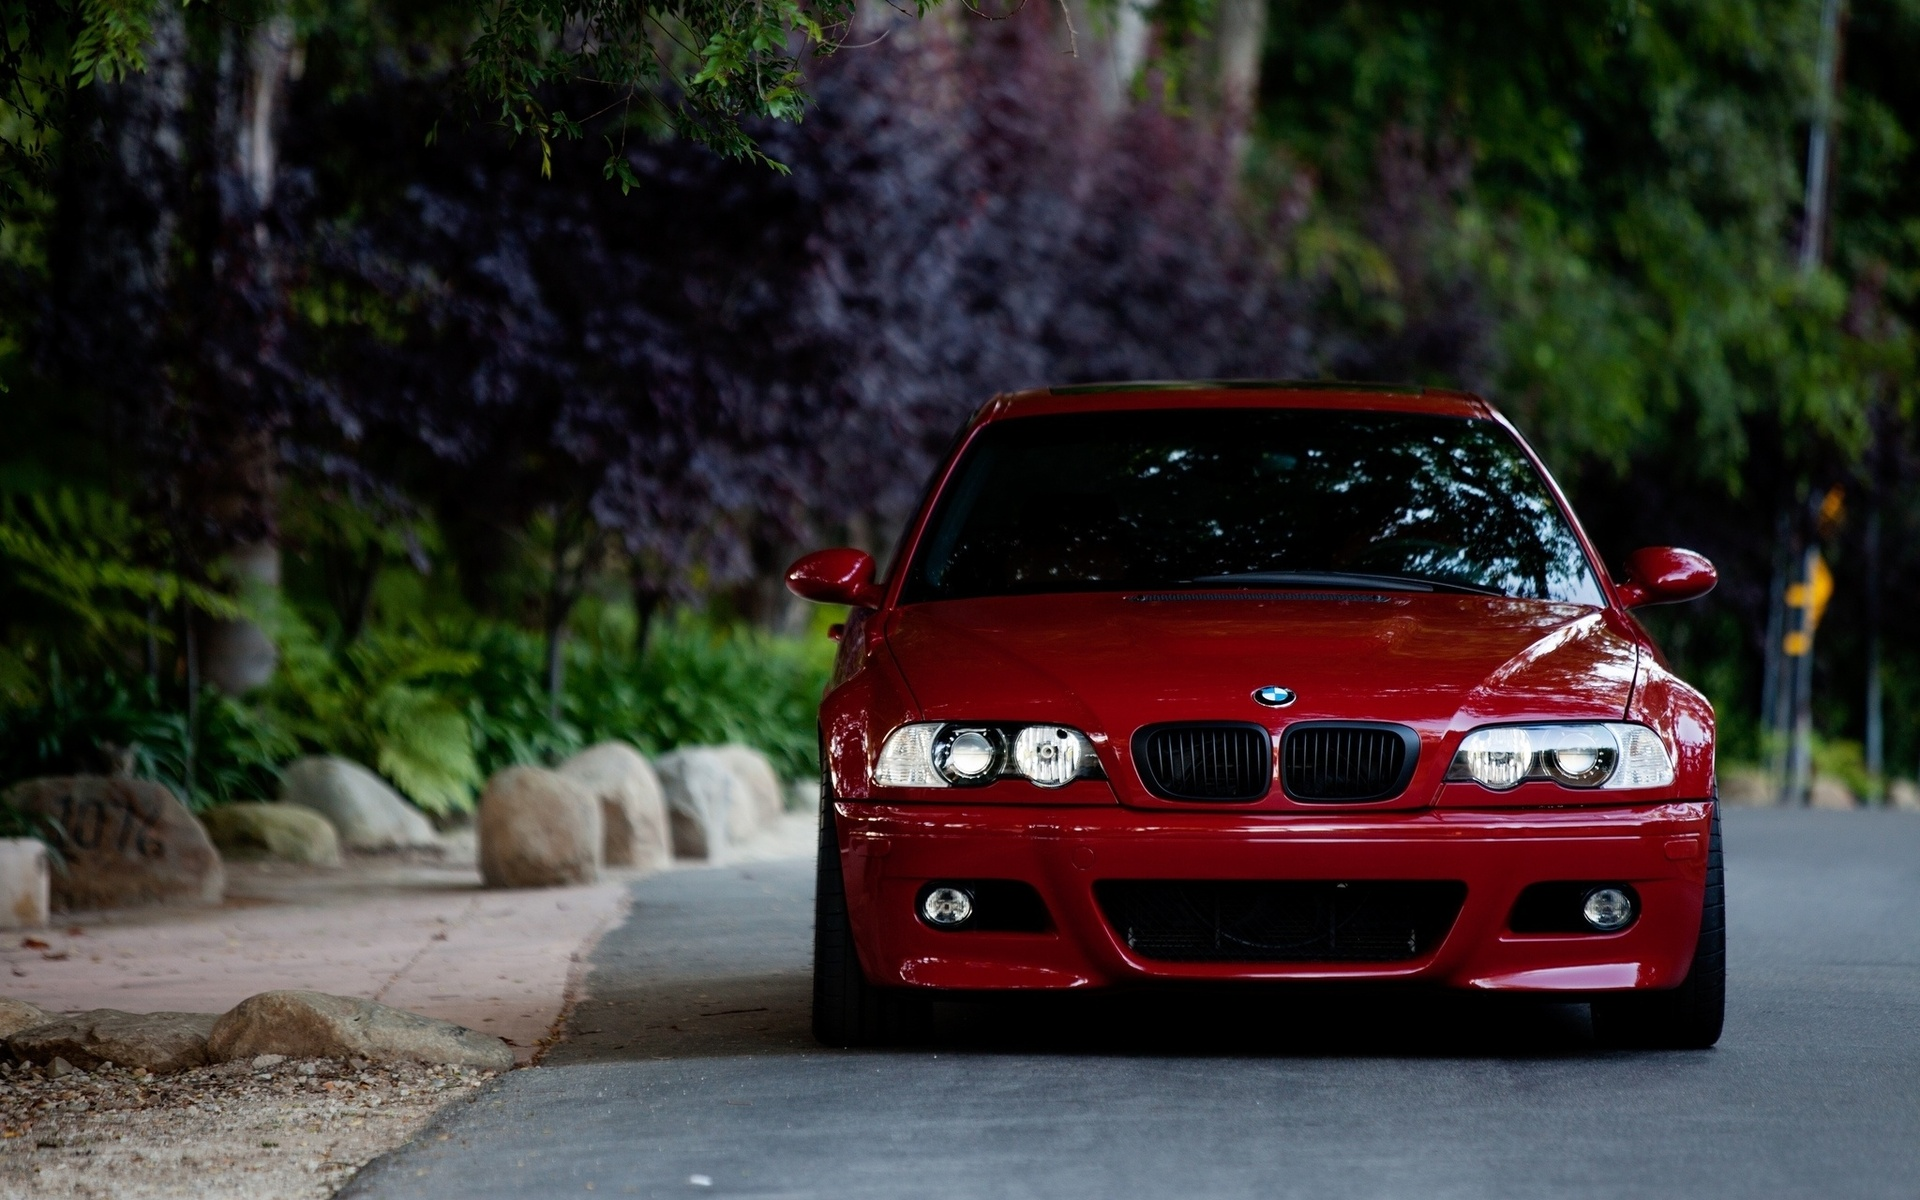 download Bmw E46 M3 Wallpapers HD [1920x1200] for your 1920x1200